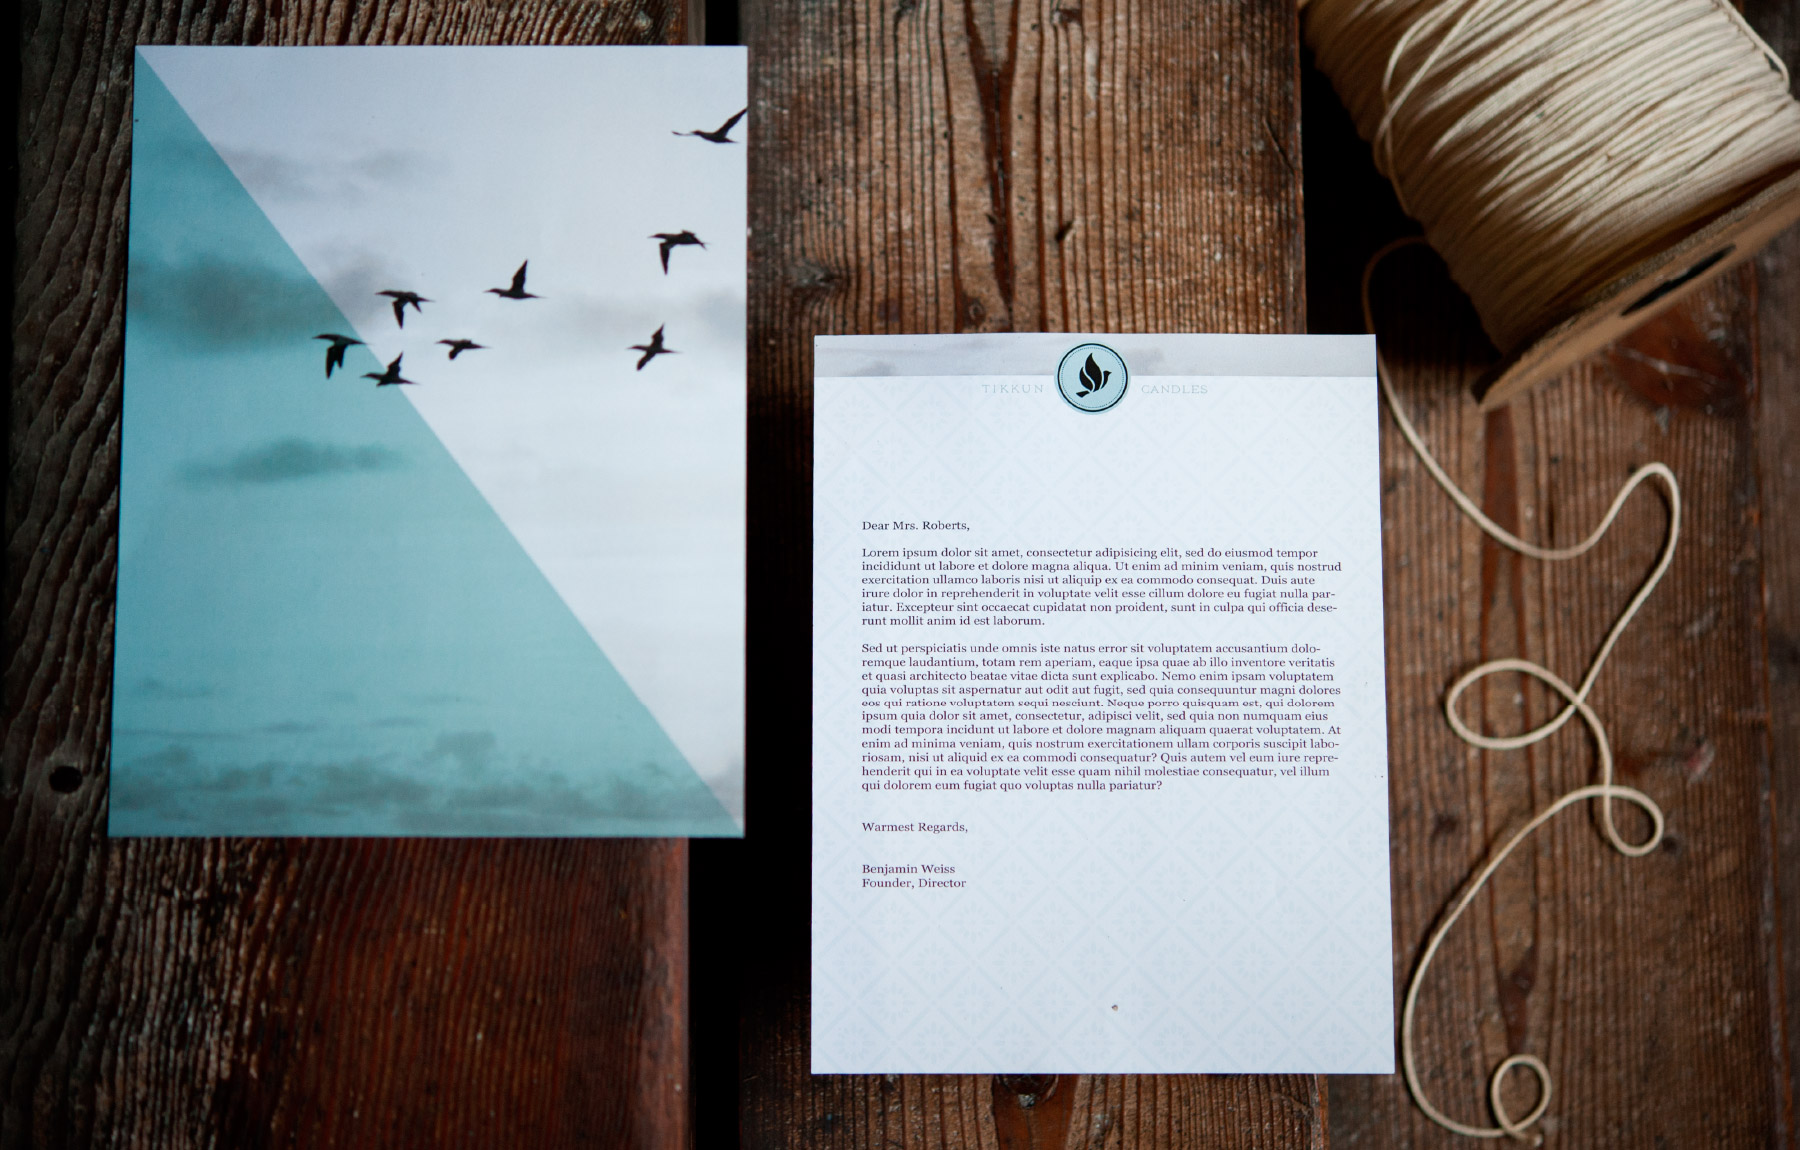 Letterhead with peaceful dove and sky photo background